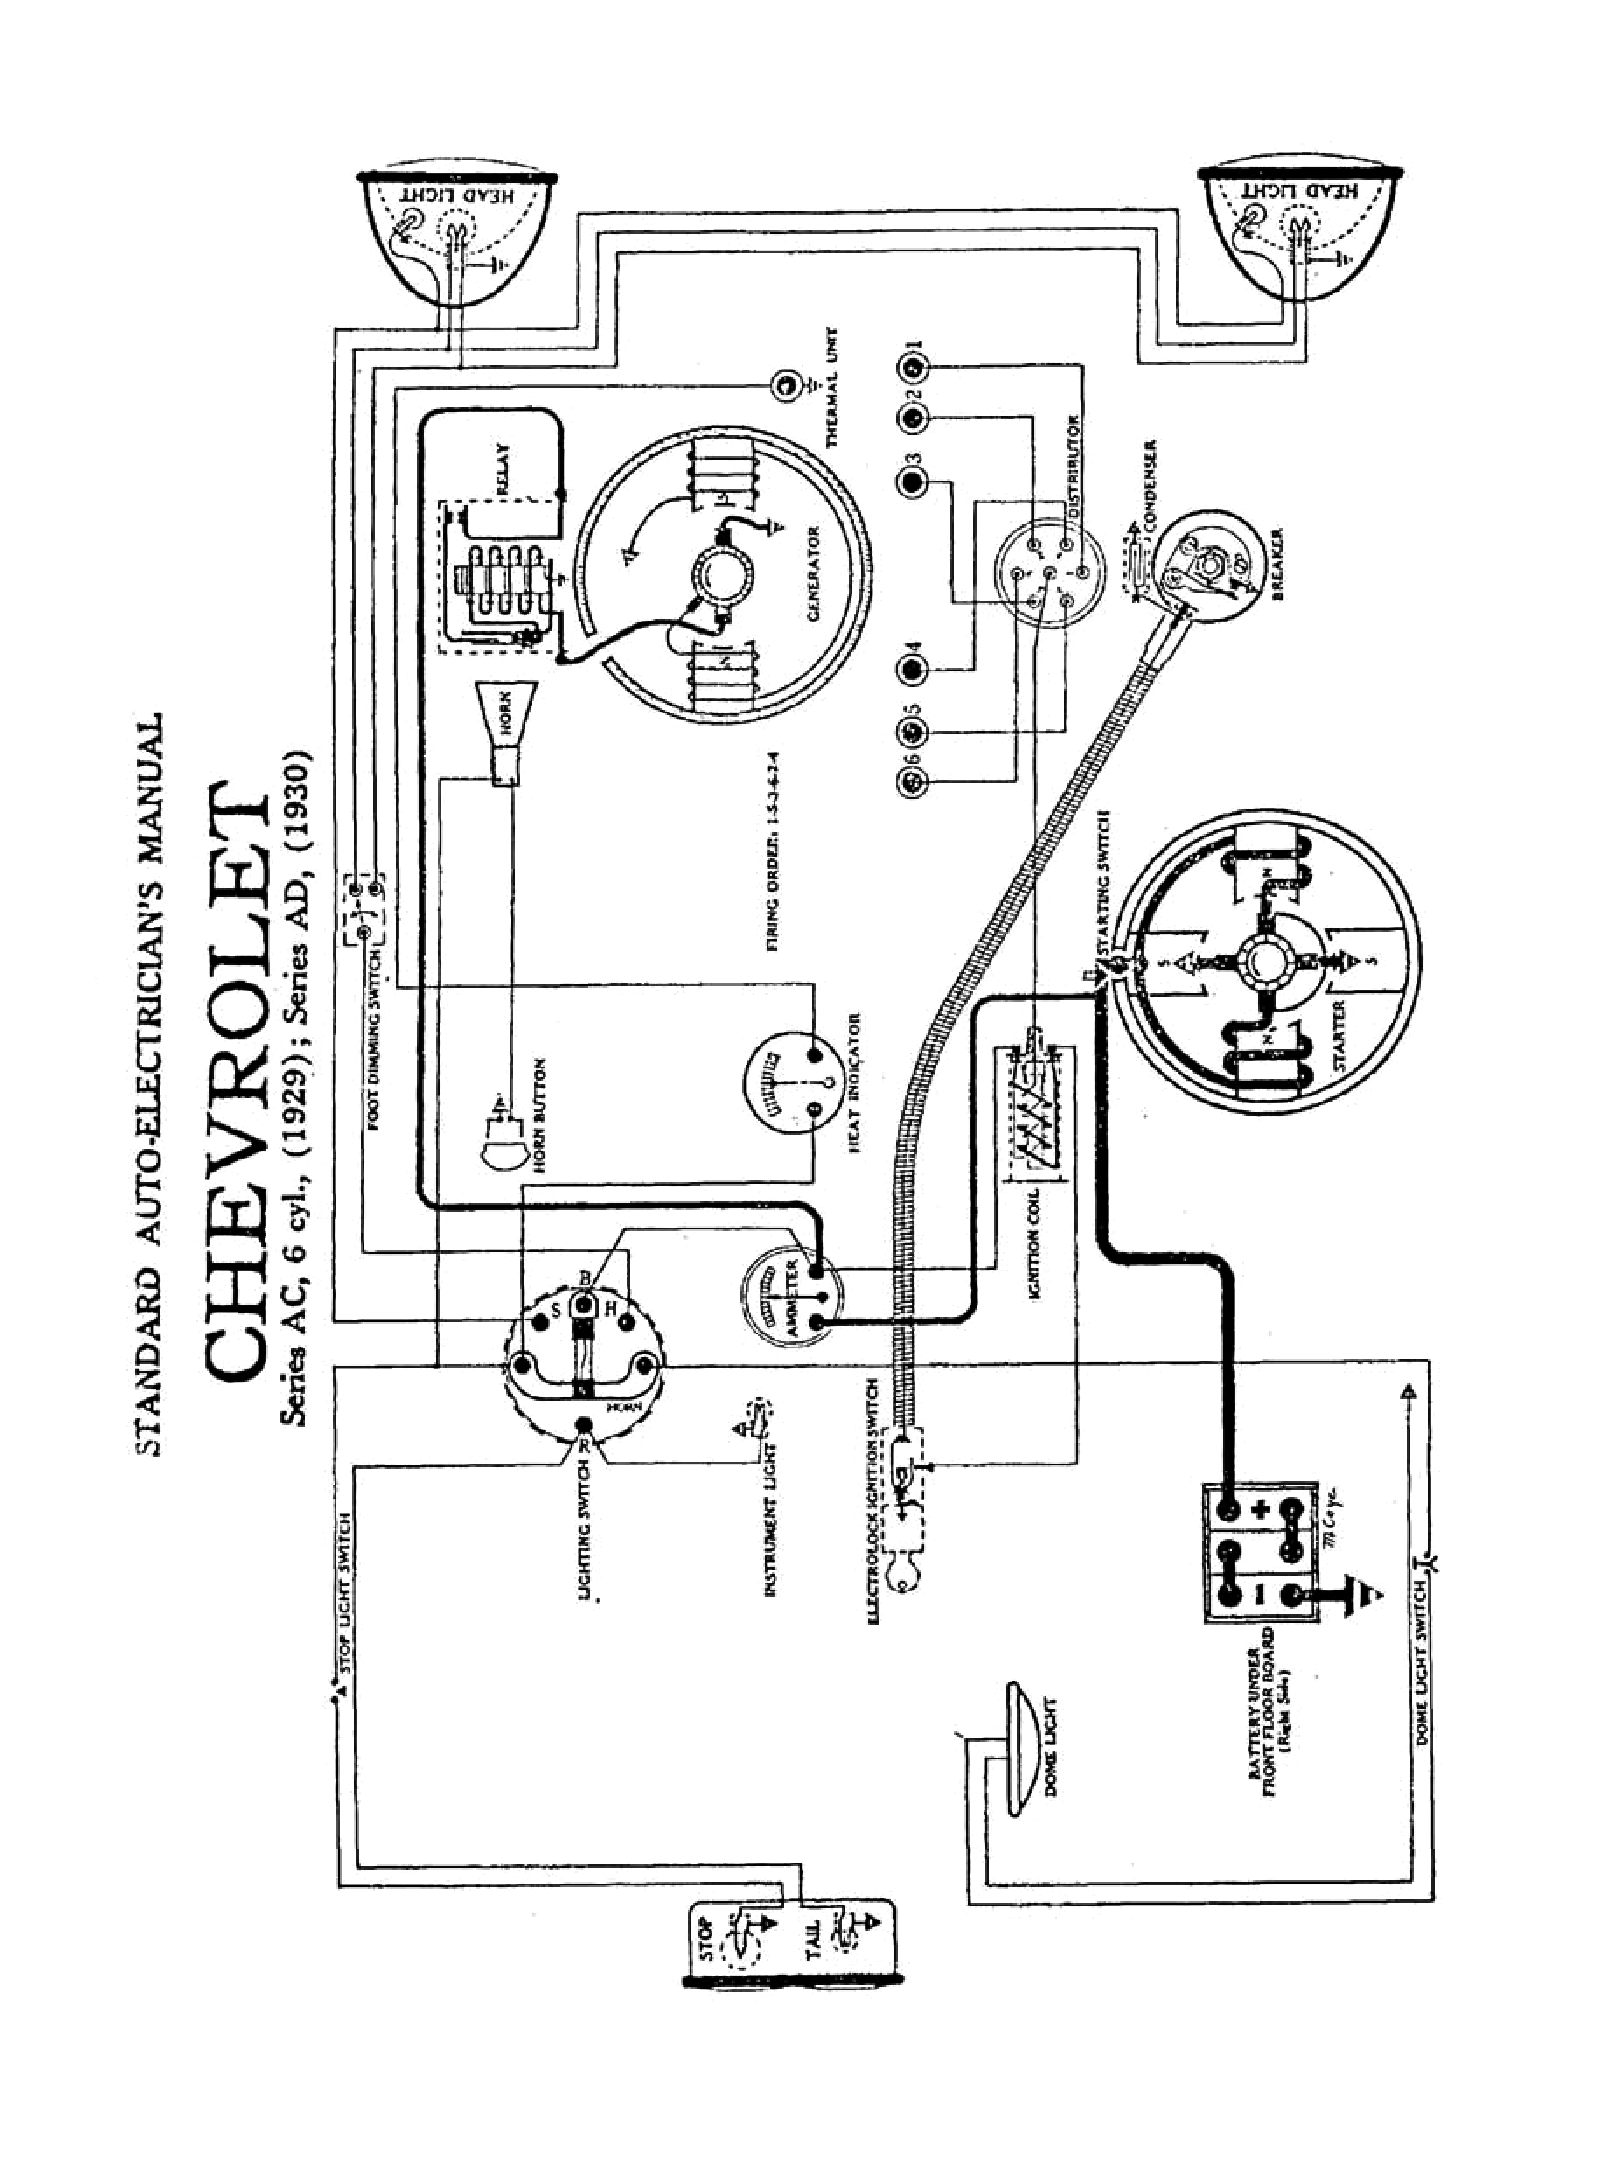 hight resolution of 1929 ford truck wiring diagram wiring library 1930 ford roadster 1930 ford stop light wiring diagram